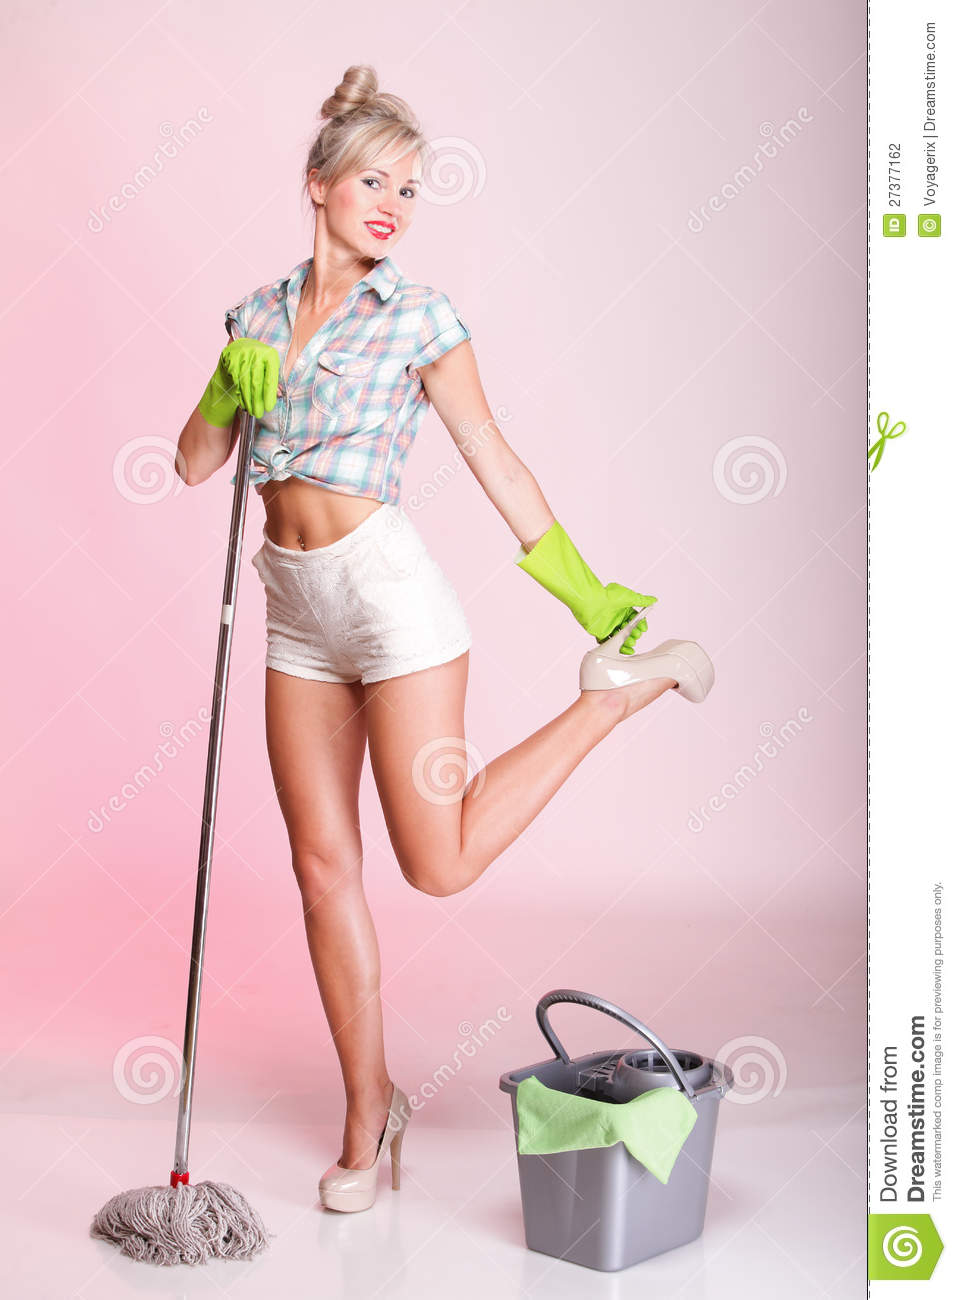 Video girl house wife